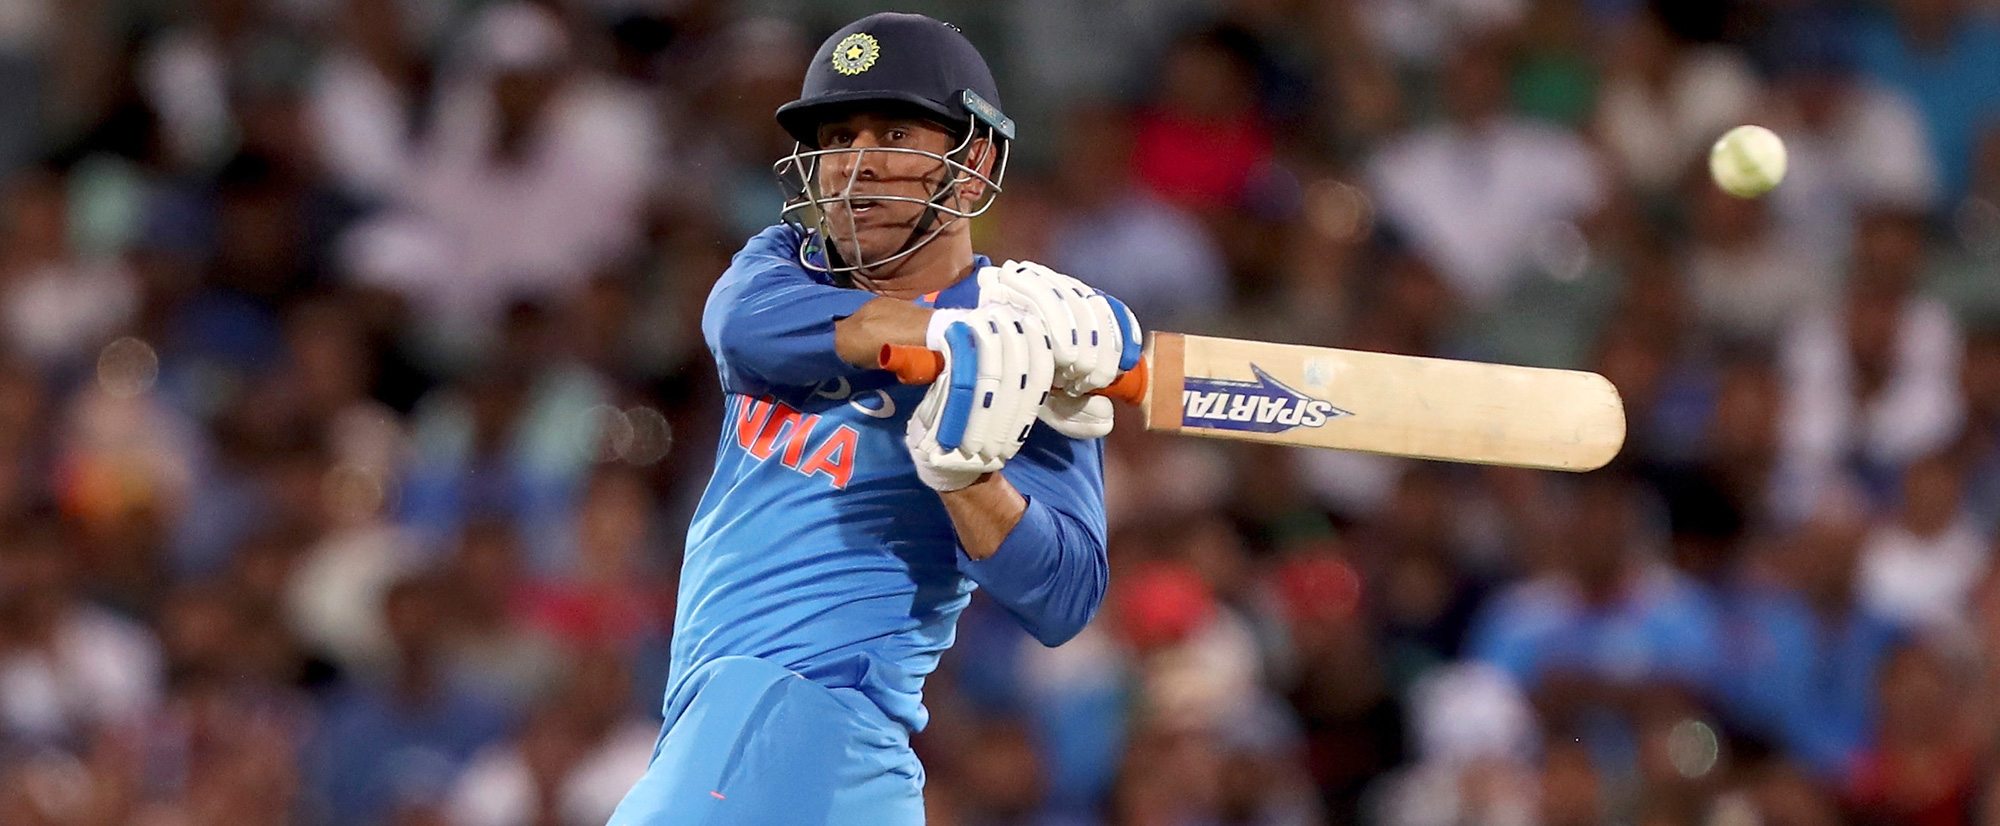 Dhoni's rejuvenated form is good news for the Indian team